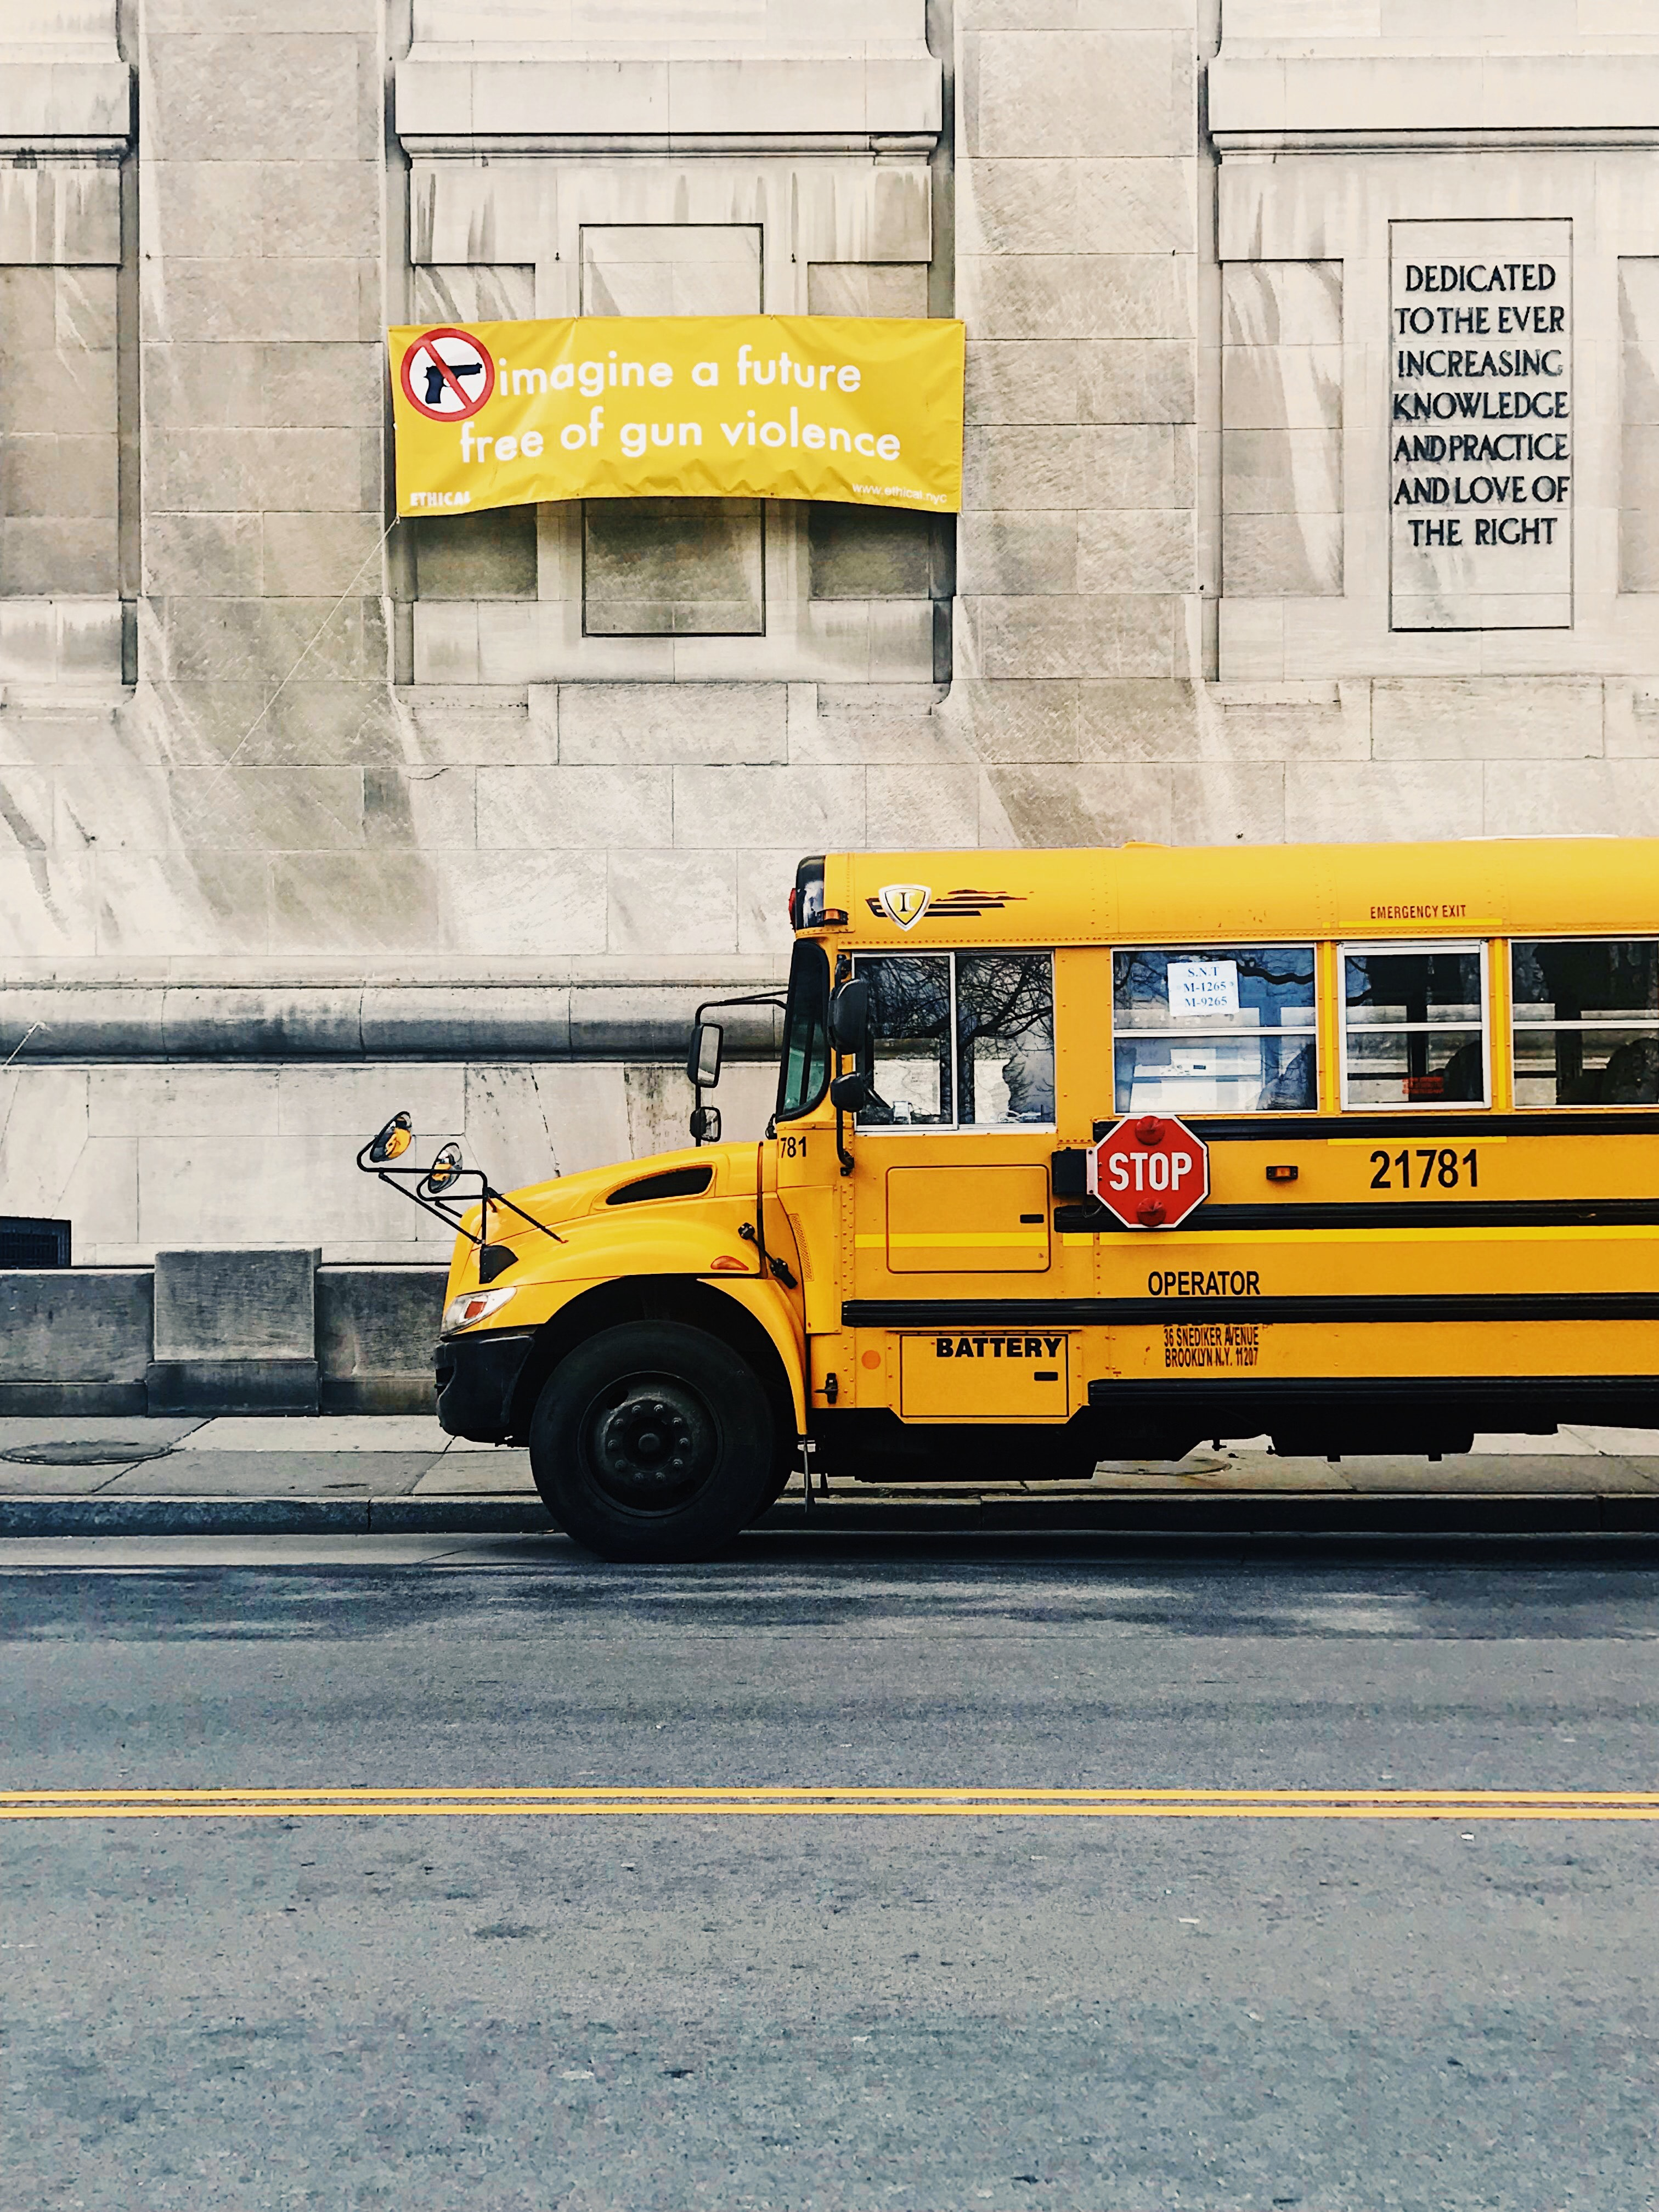 school bus in front of an anti-gun poster